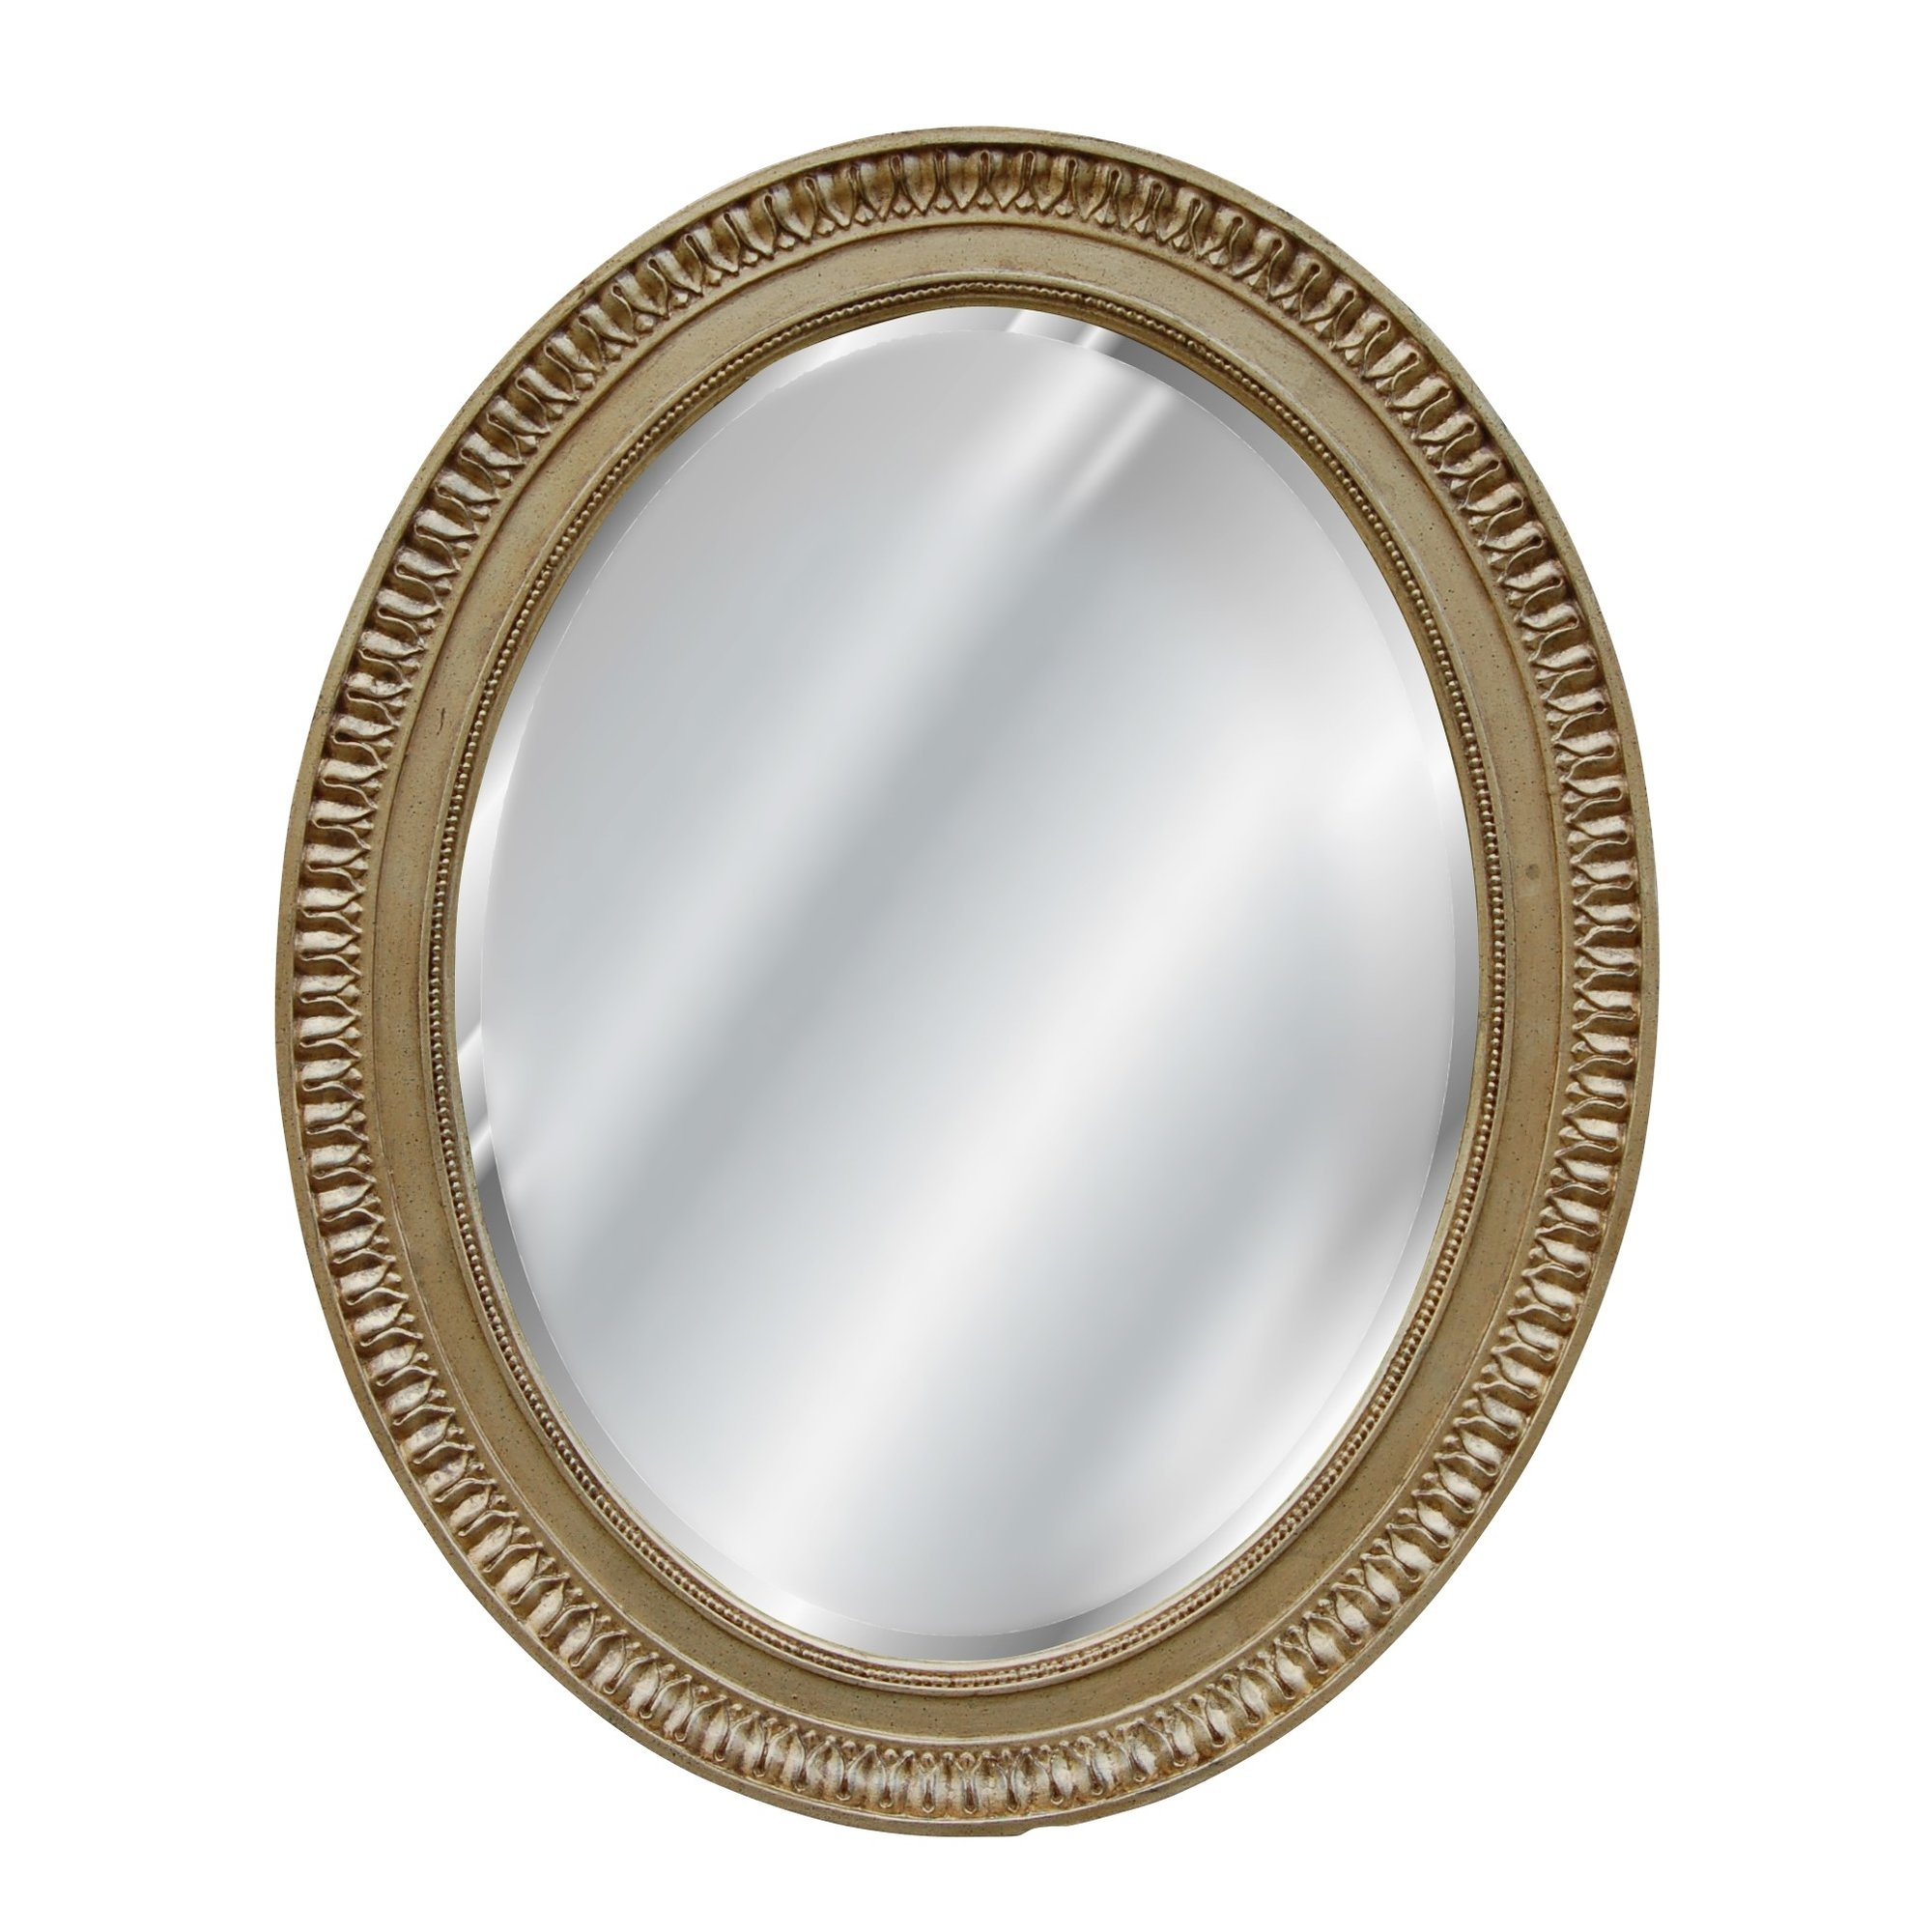 Hickory Manor House Ornate Round Mirror Wayfair Inside Ornate Round Mirror (View 4 of 15)